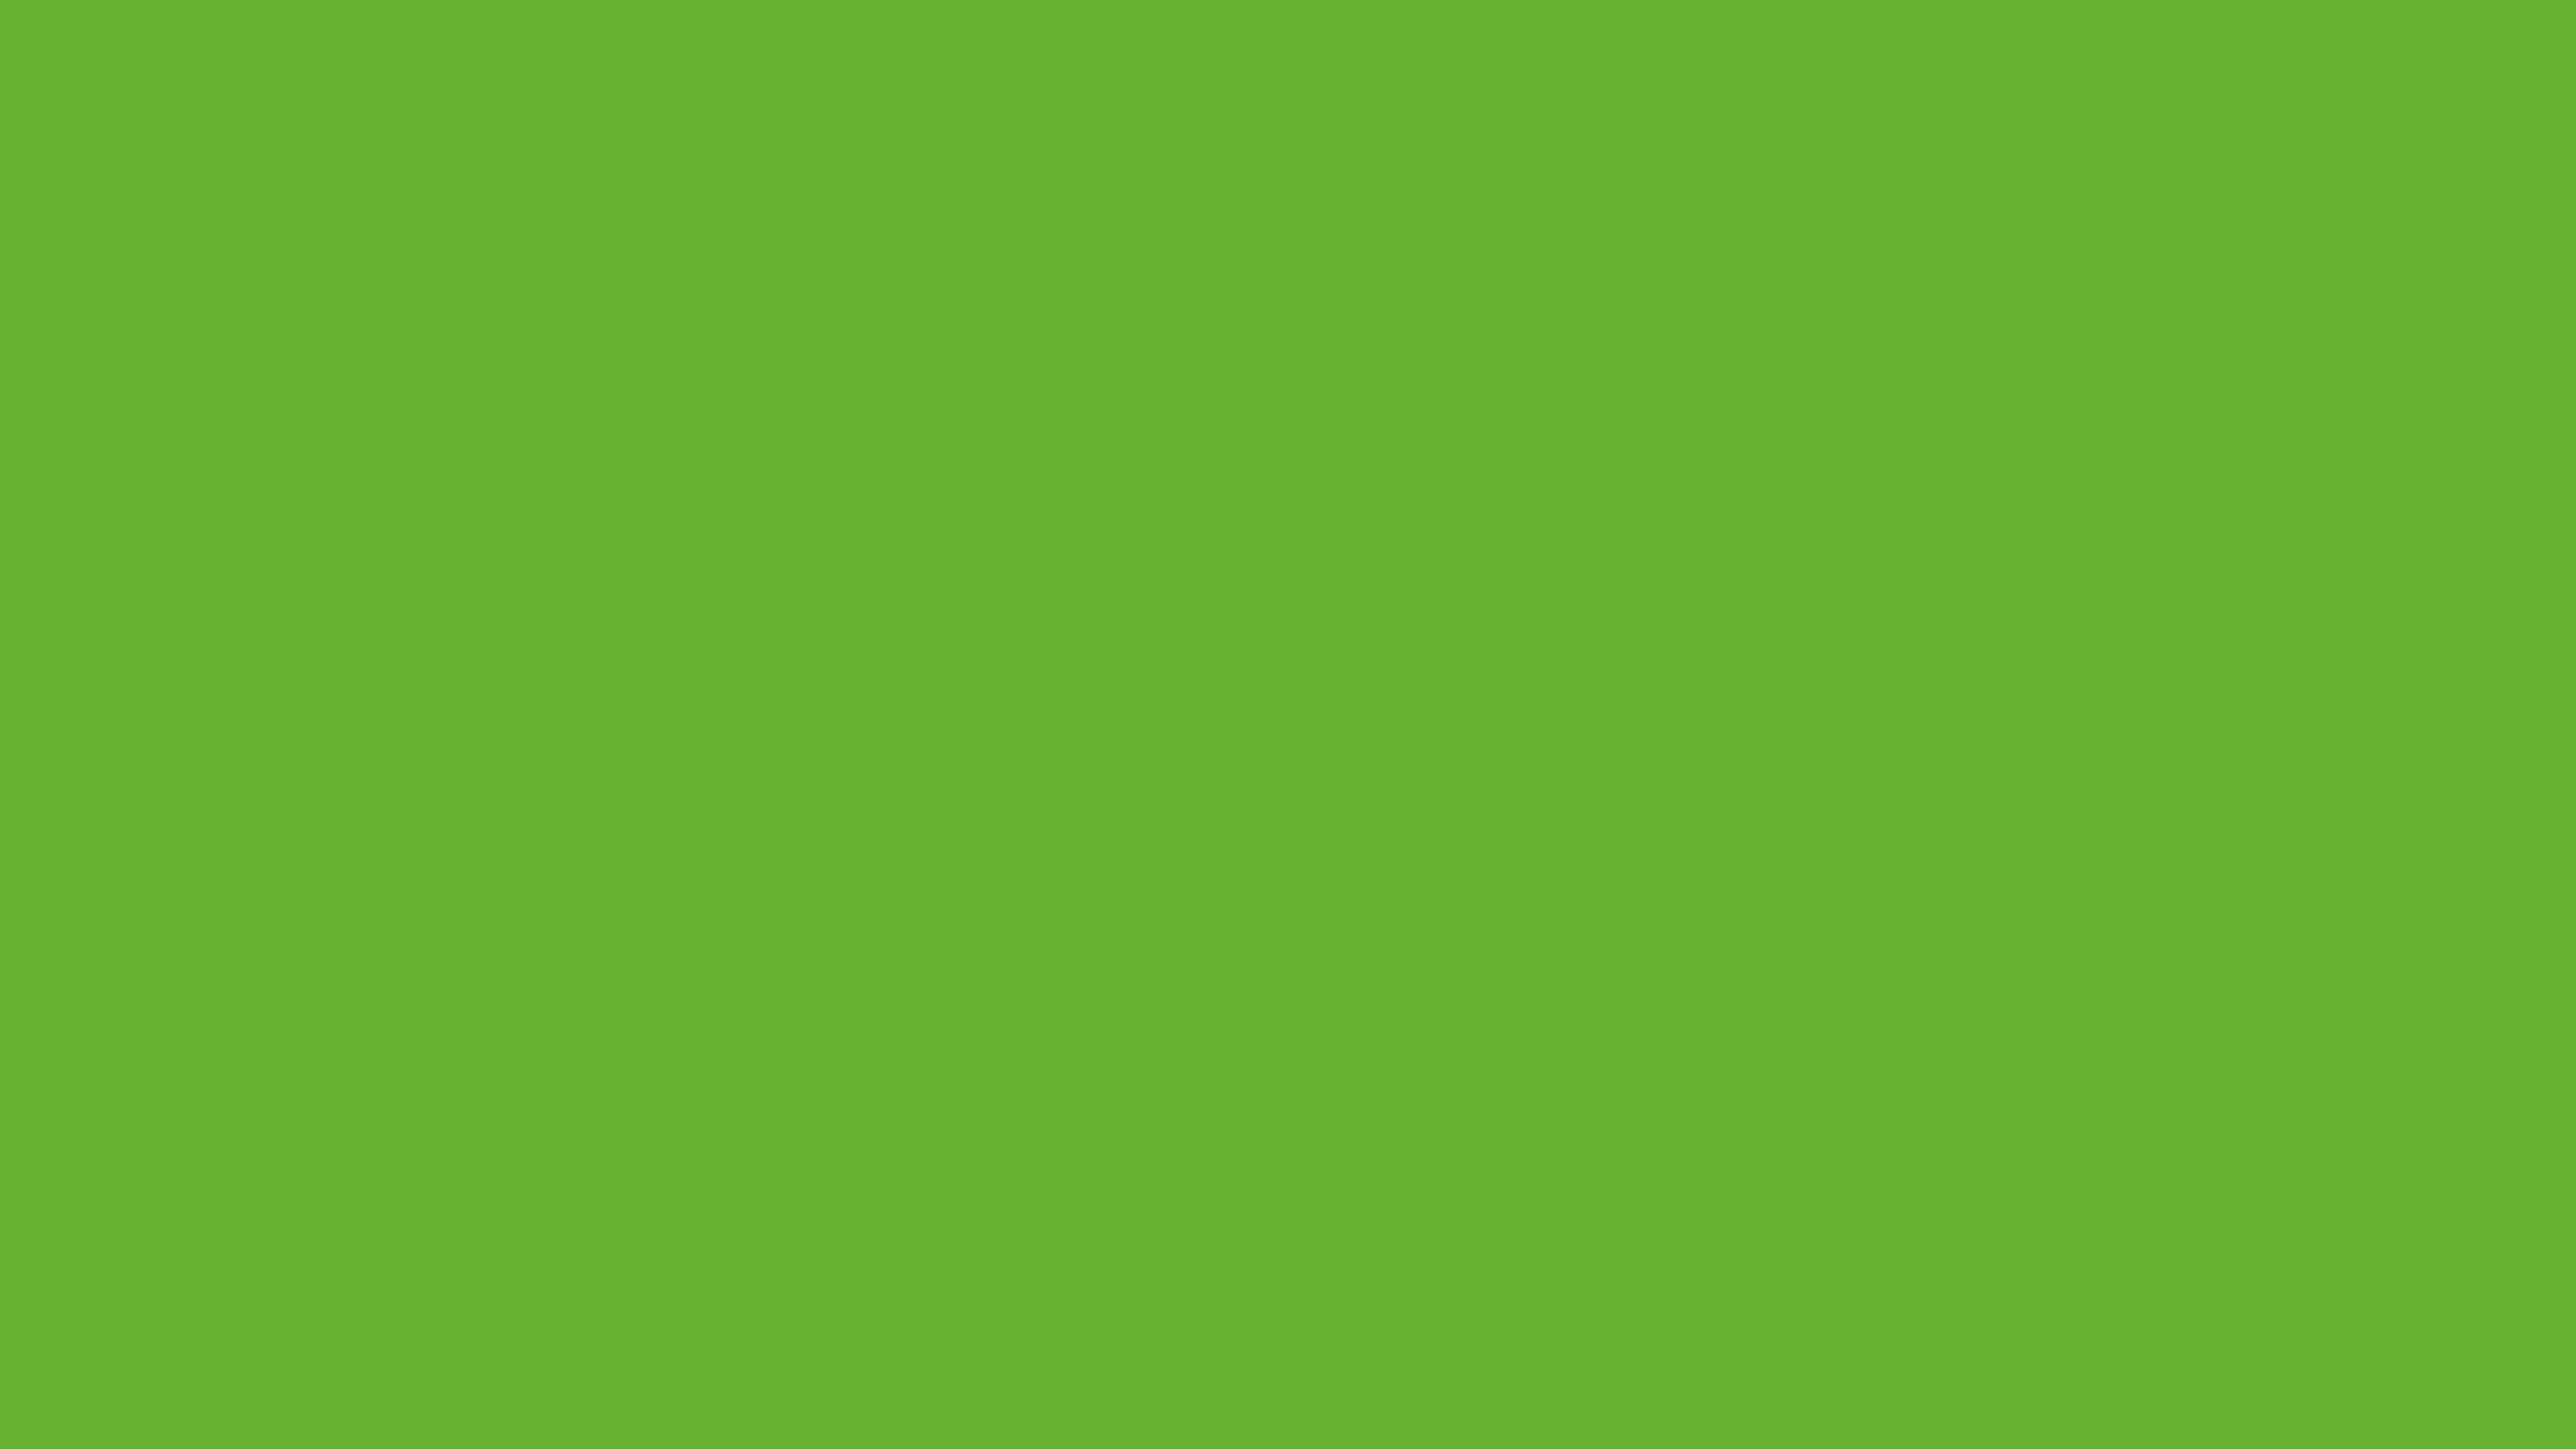 5120x2880 Green RYB Solid Color Background